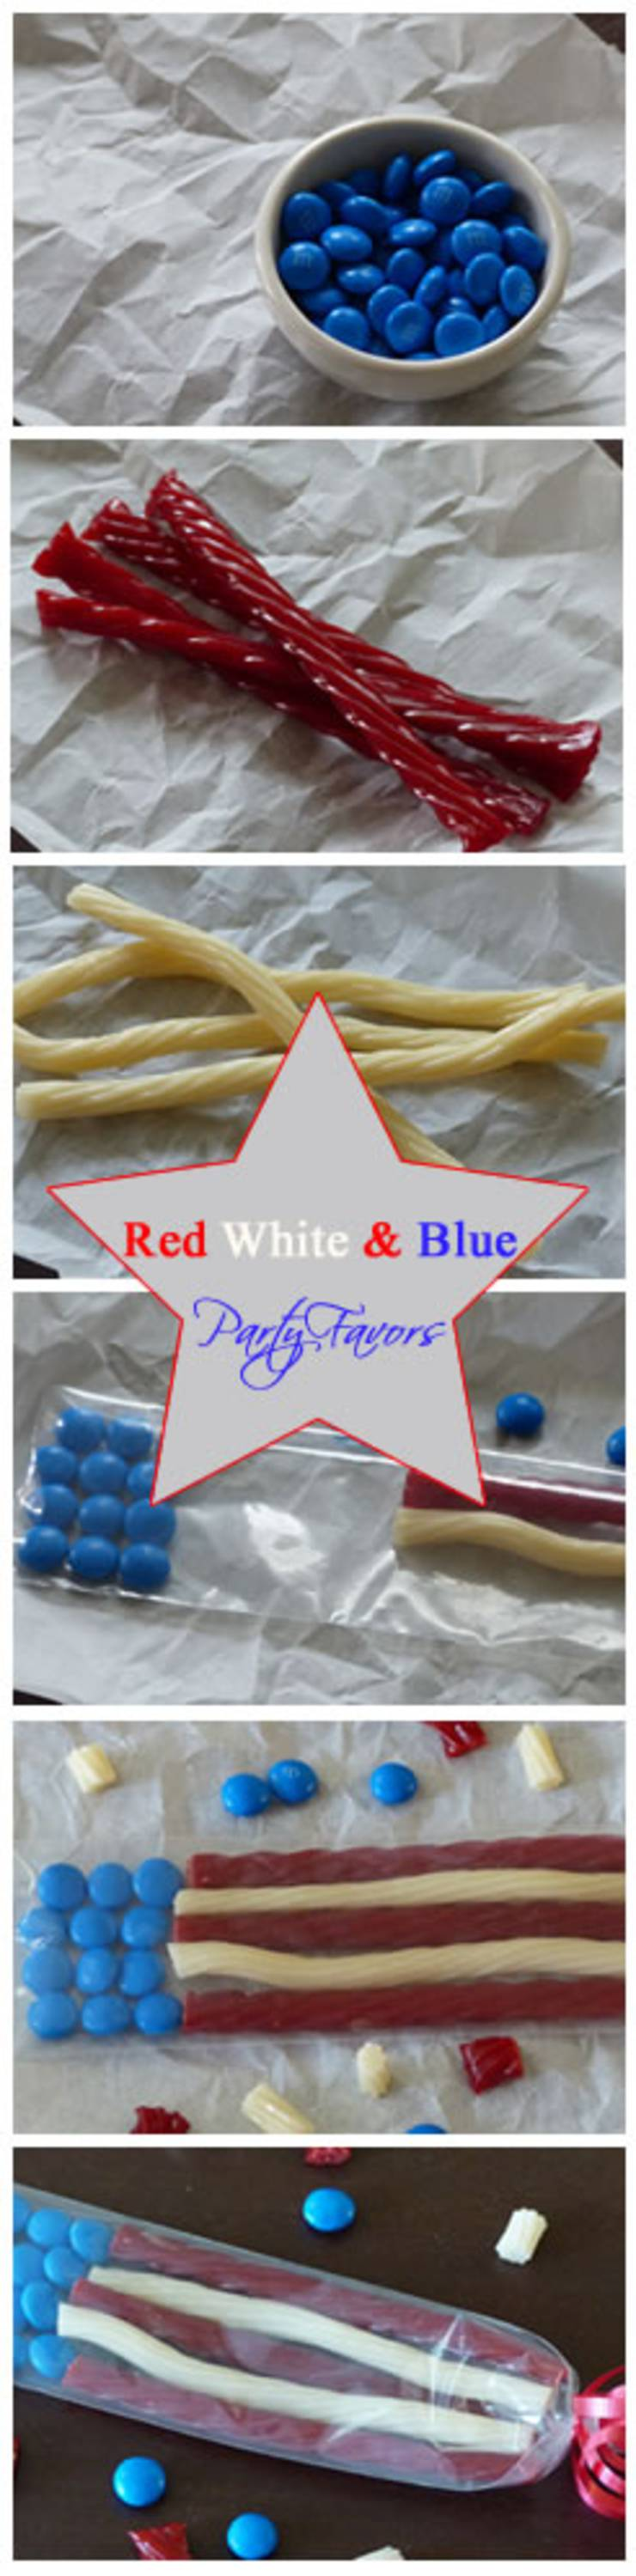 red_white_blue_party_favors